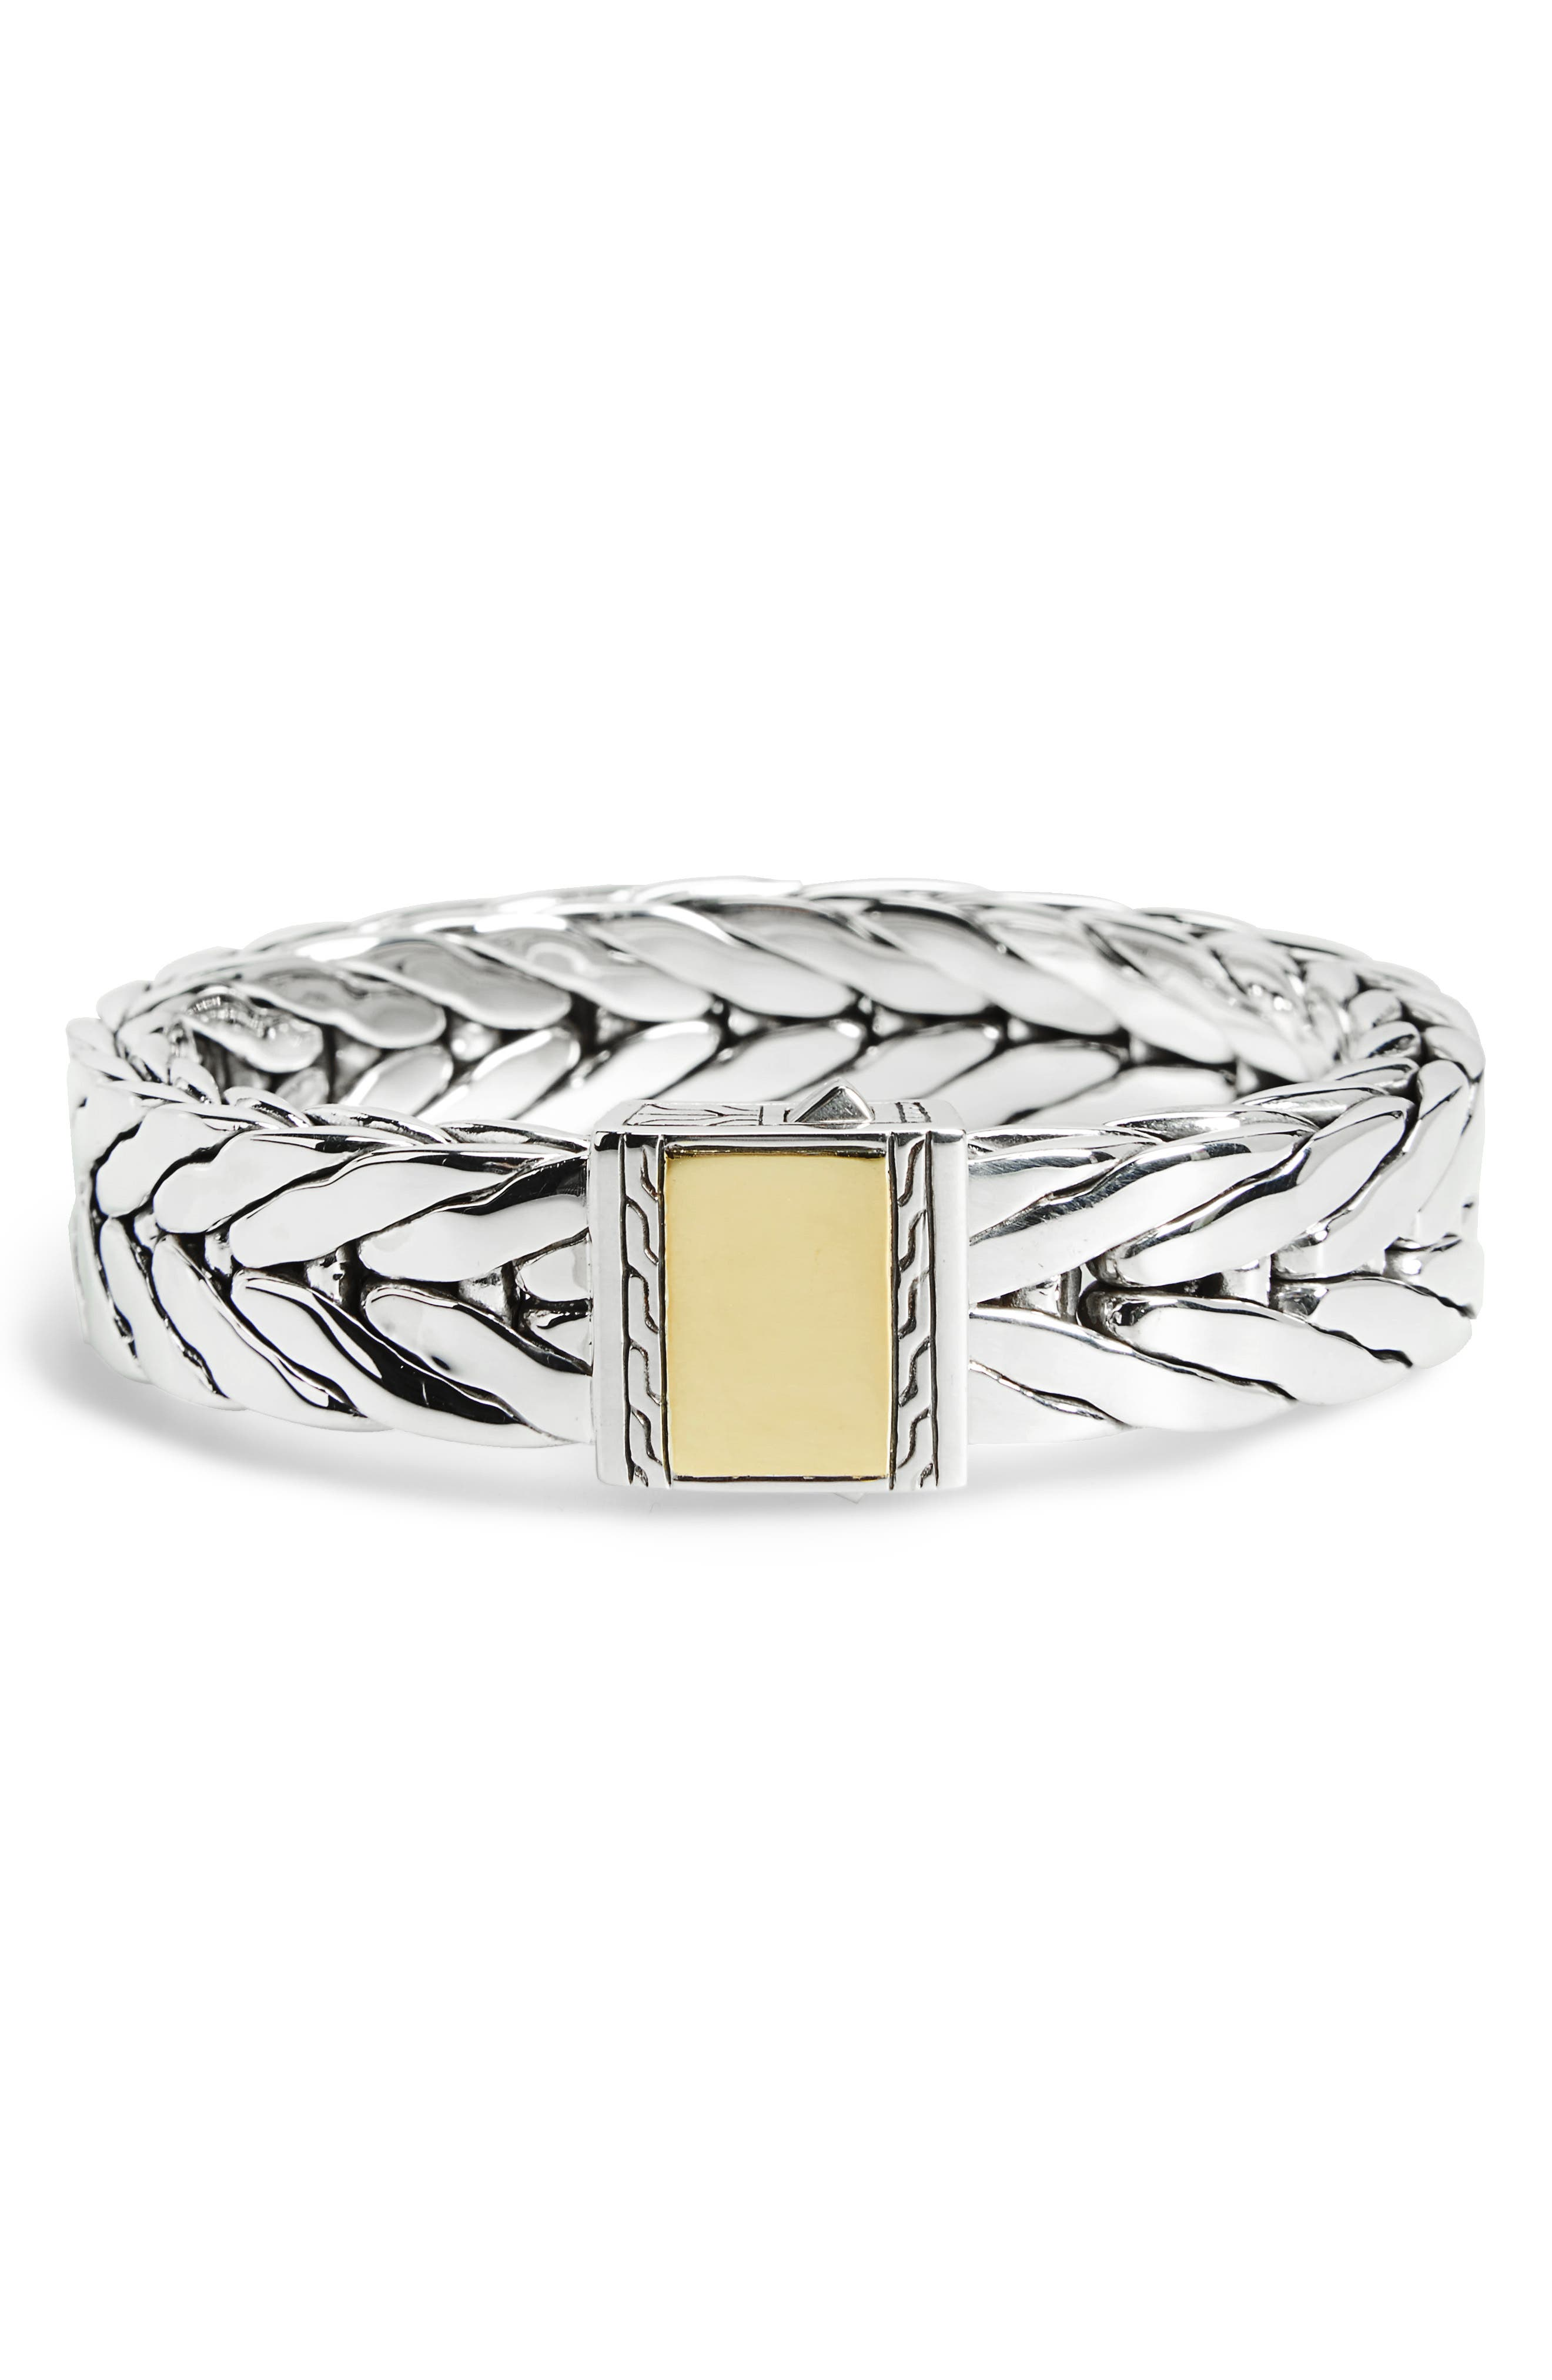 Modern Chain Extra Large Chain Bracelet,                             Main thumbnail 1, color,                             SILVER/ GOLD